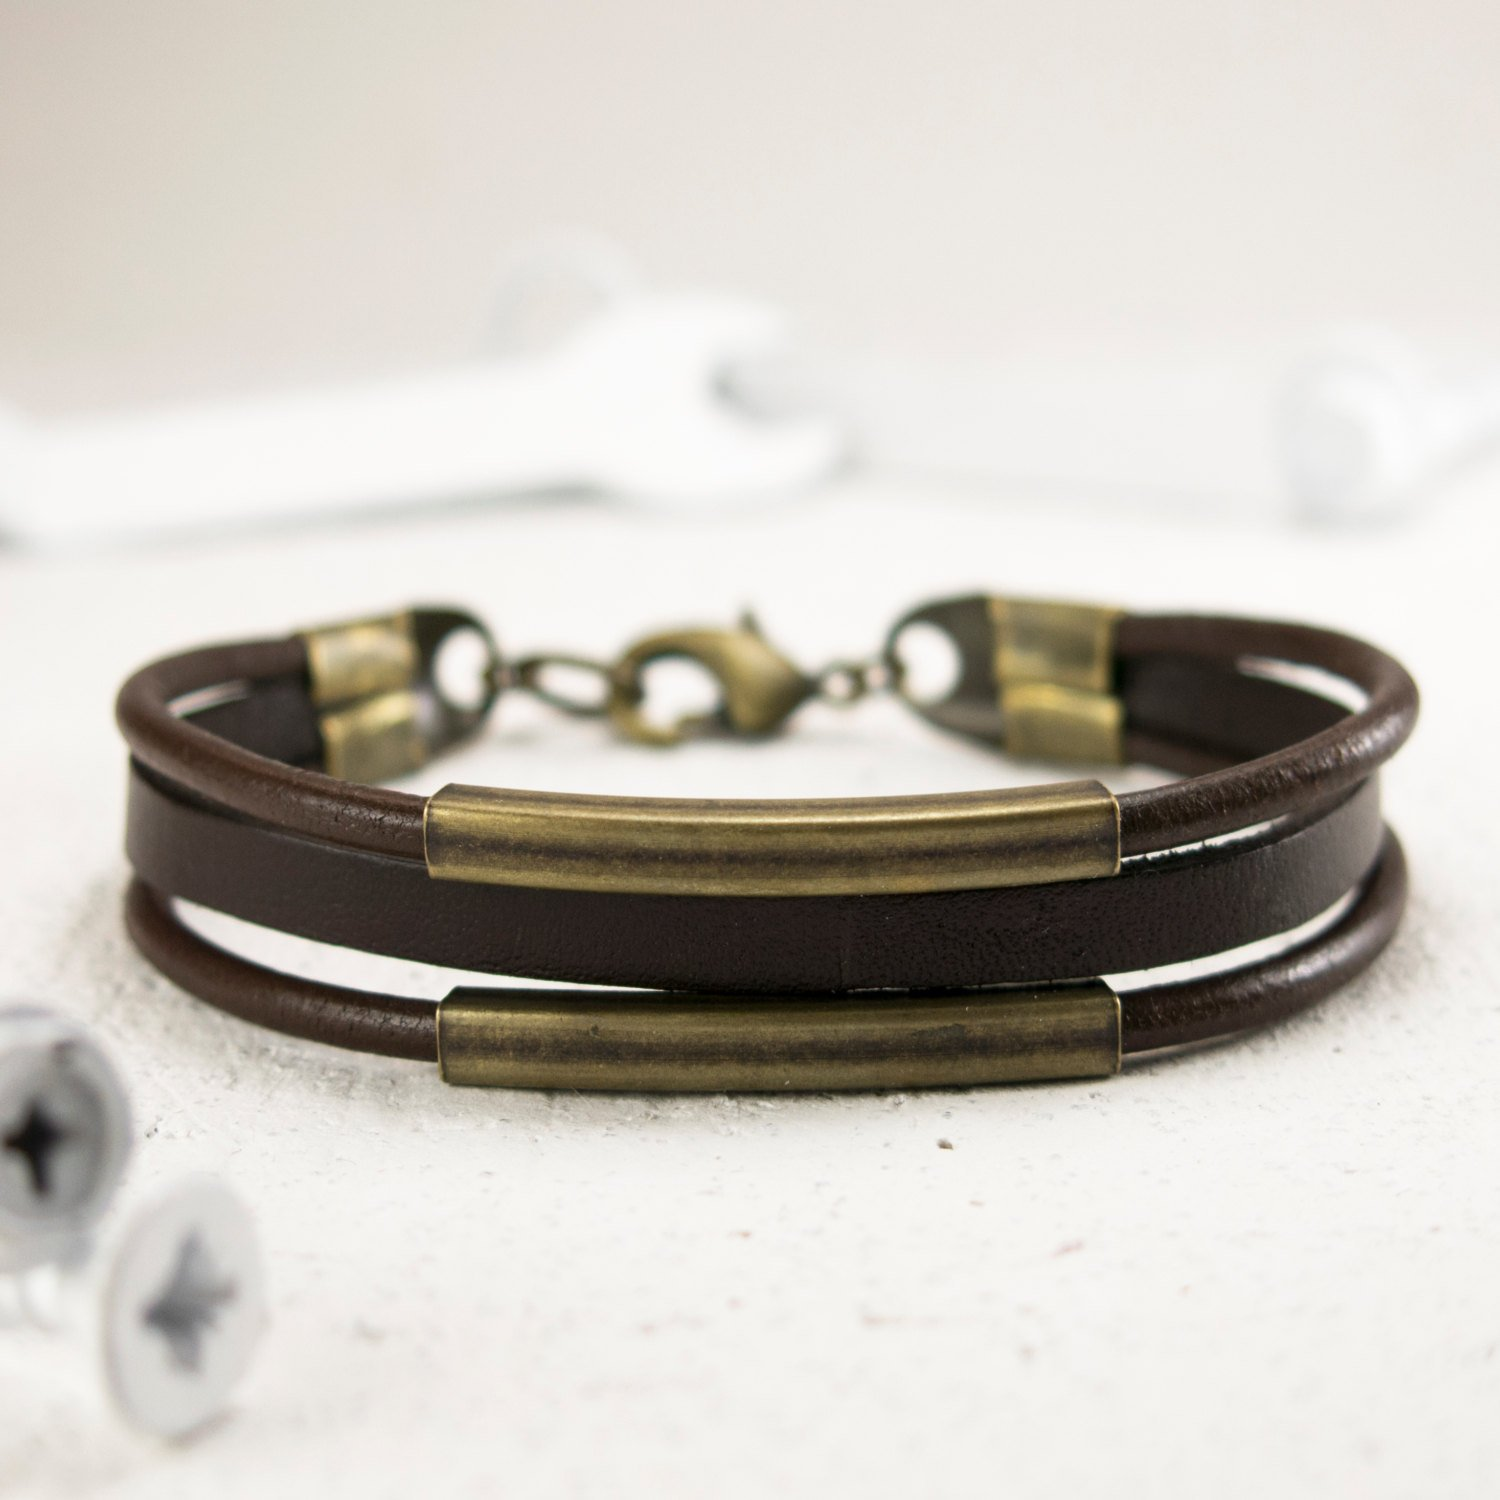 Men's Bracelet - Men's Leather Bracelet - Men's Jewelry - Men's Gift - Boyfriend Gift - Guys